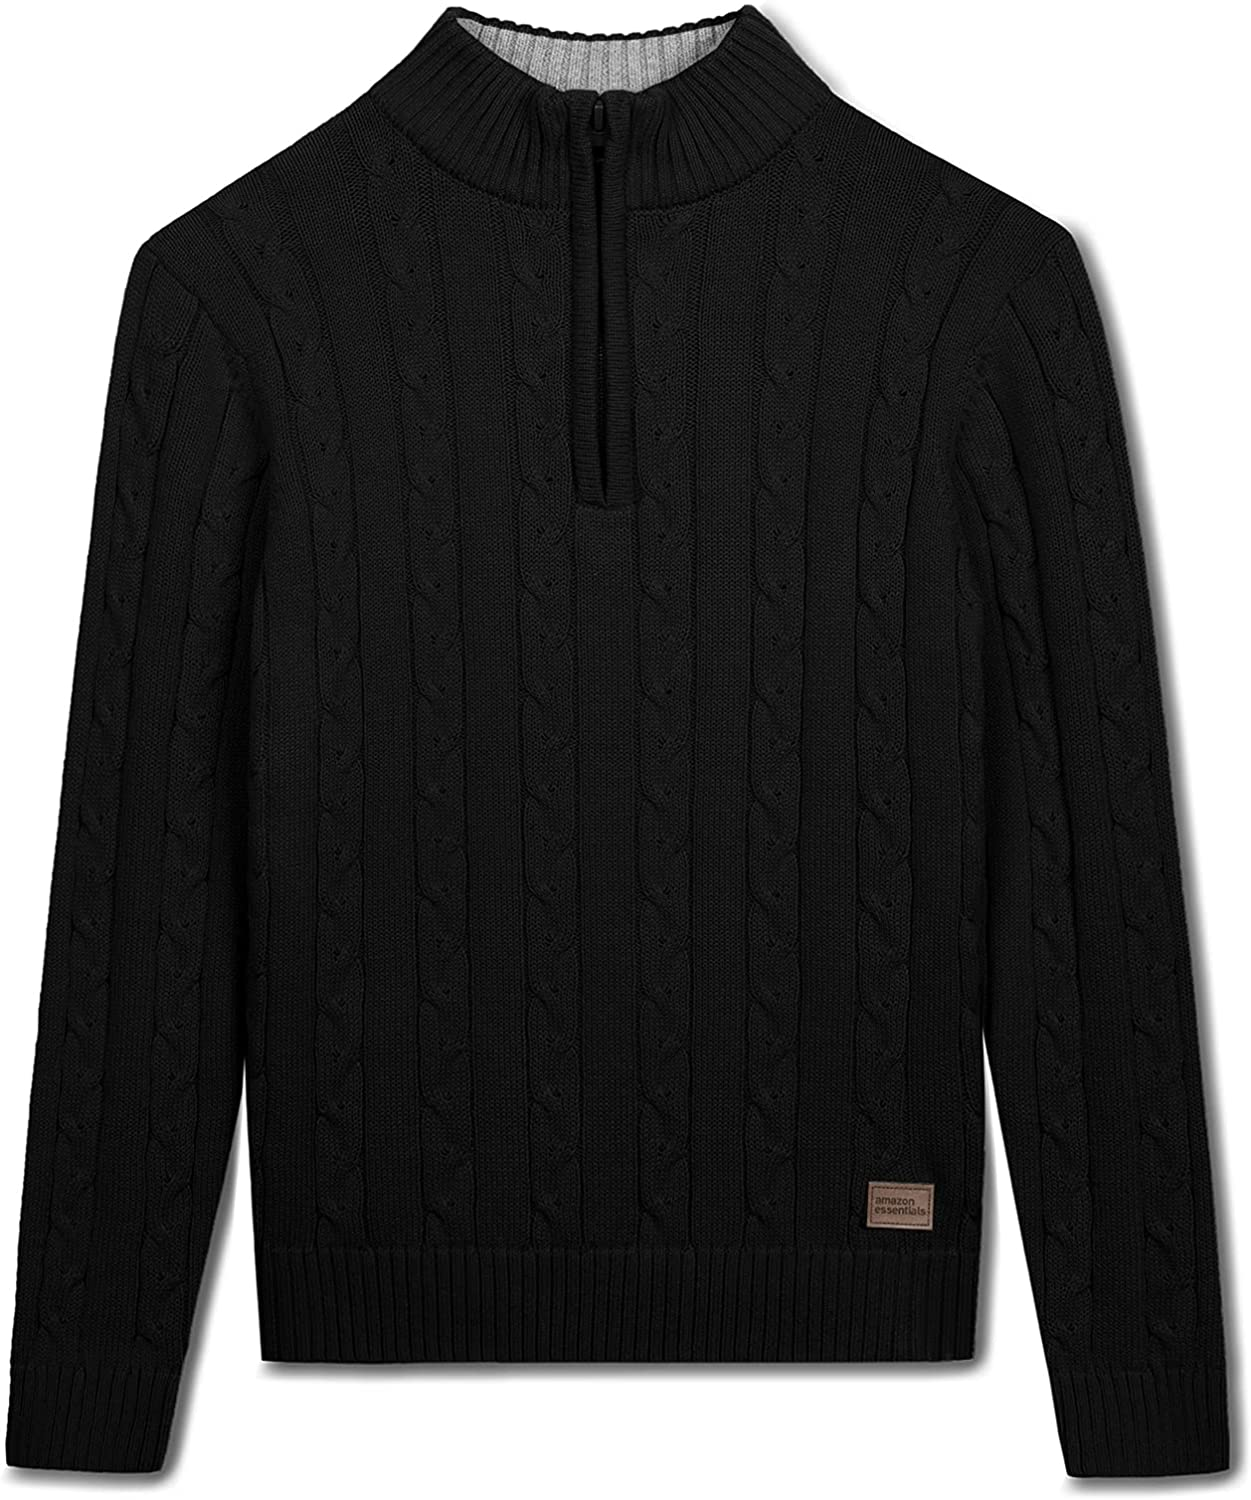 Amazon Essentials 1/4 Zip Sweater Casual Cable Knit Long Sleeve Pullover Sweatshirt for Boys Black 5-6X